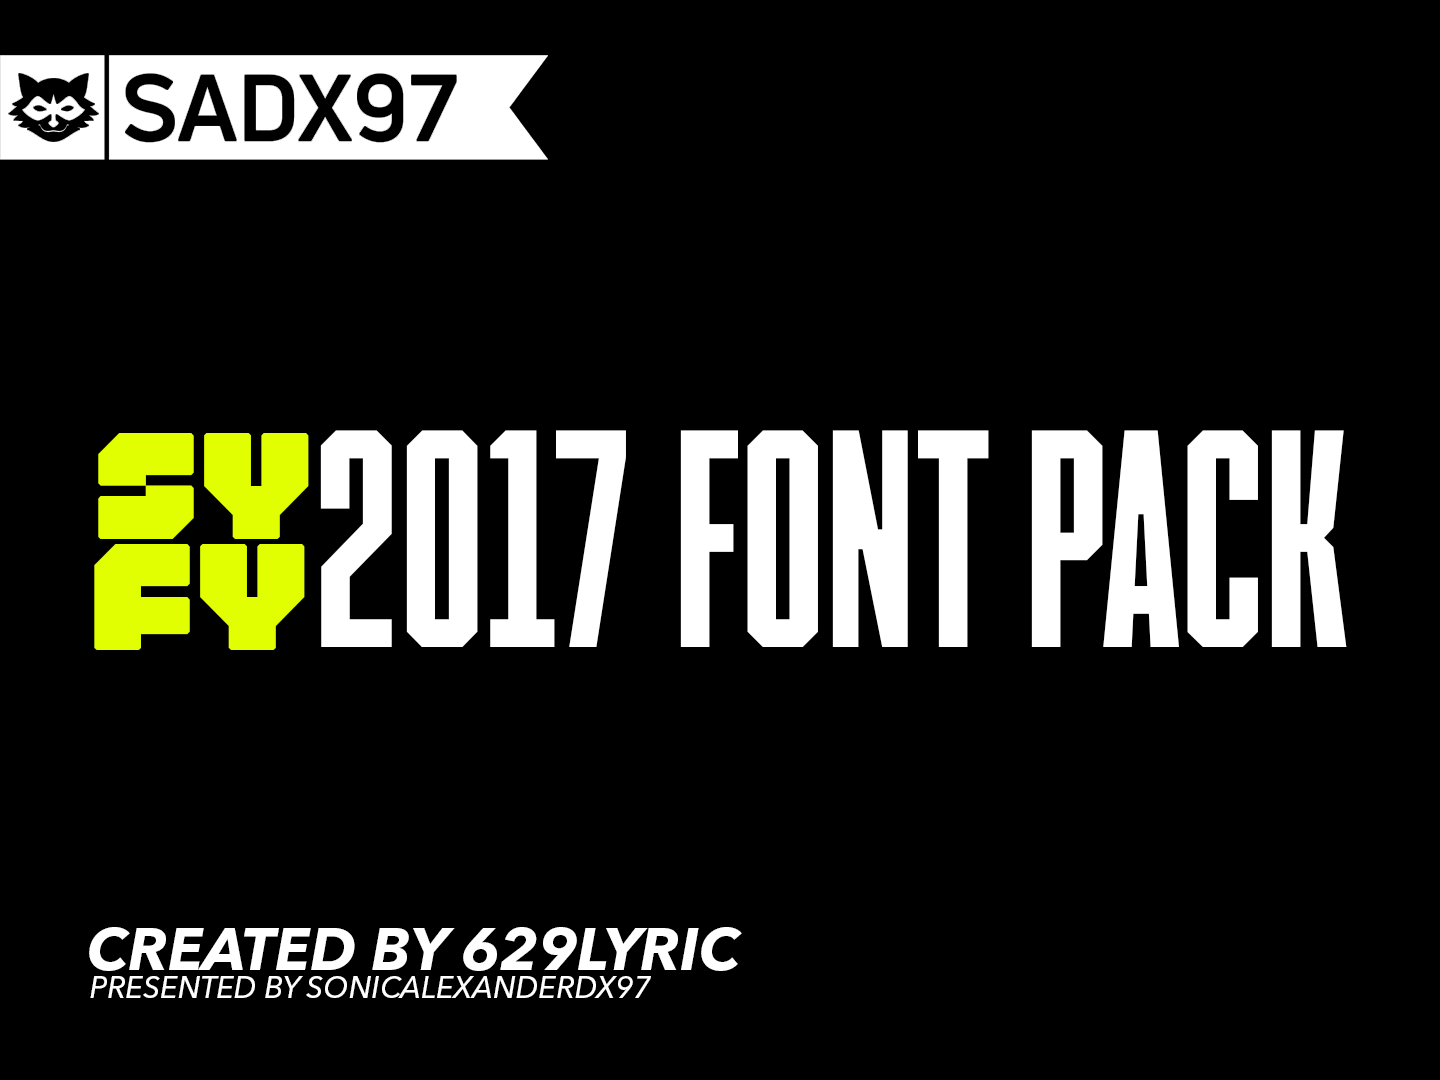 Download Syfy 2017 Font pack by SonicAlexanderDX97 on DeviantArt